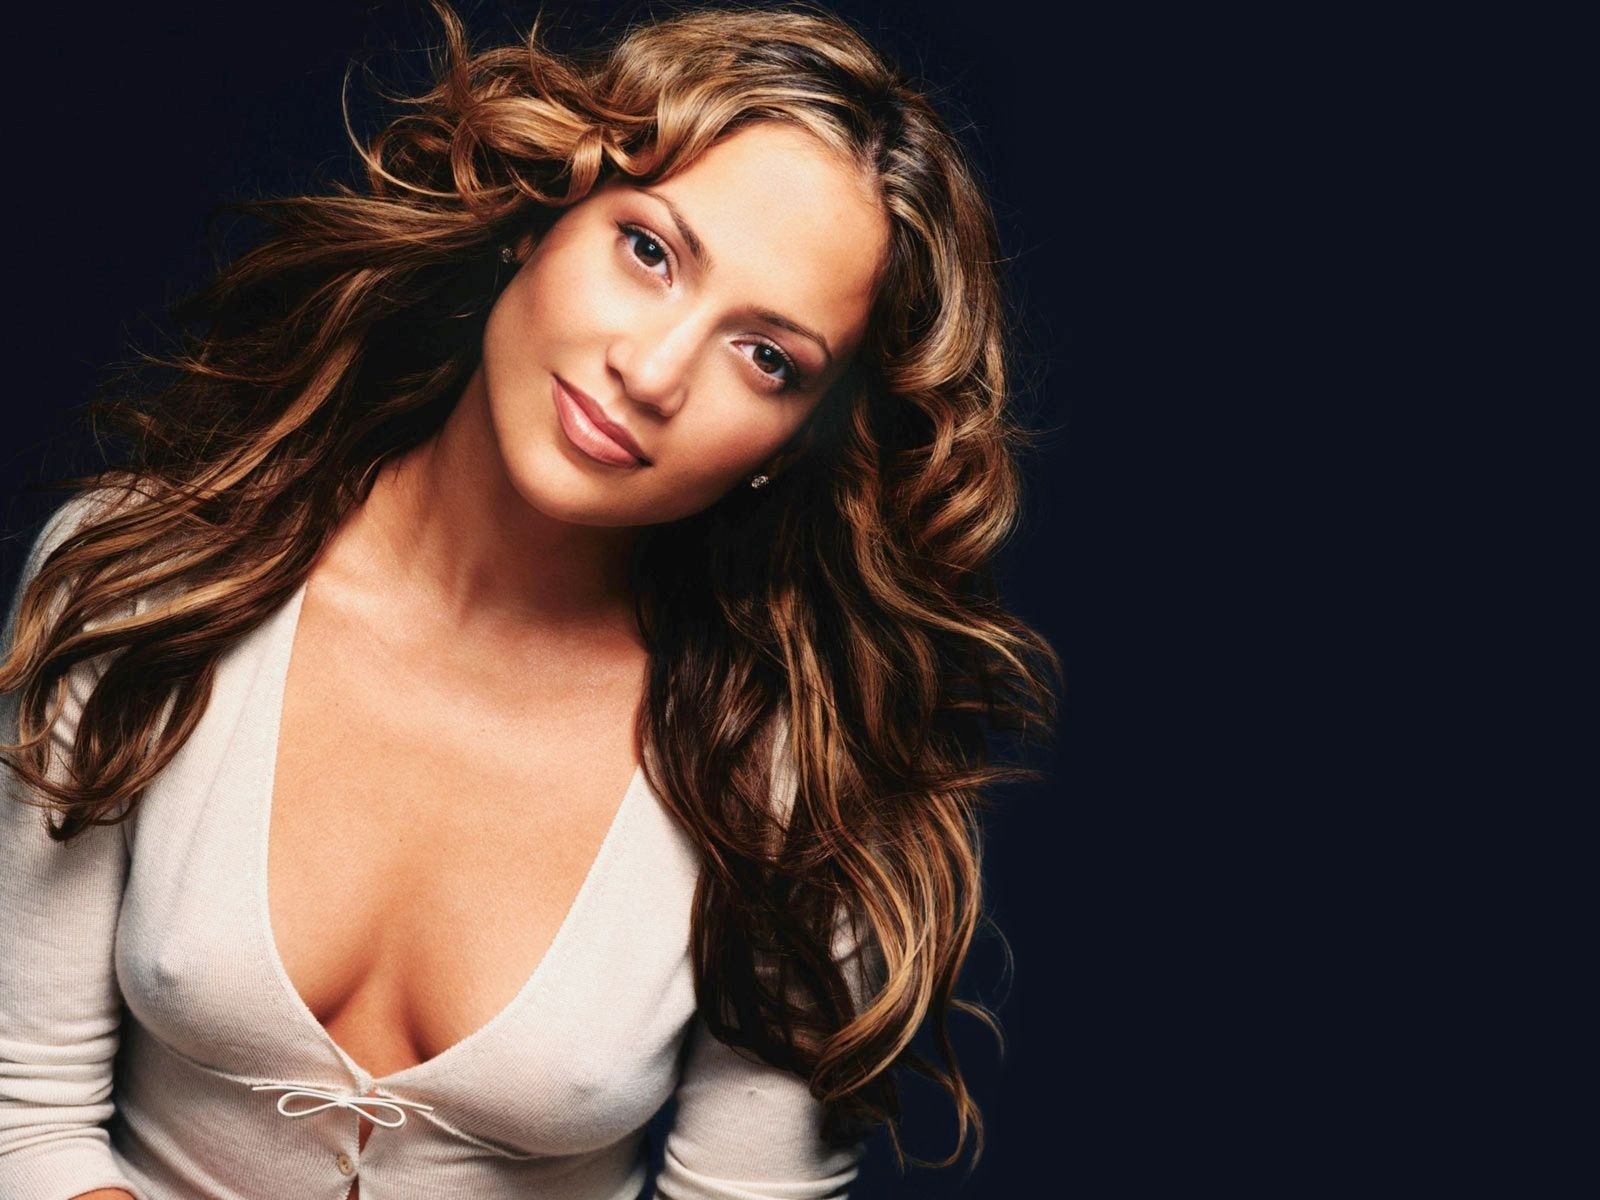 Wallpaper di Jennifer Lopez attrice e stella del pop latino